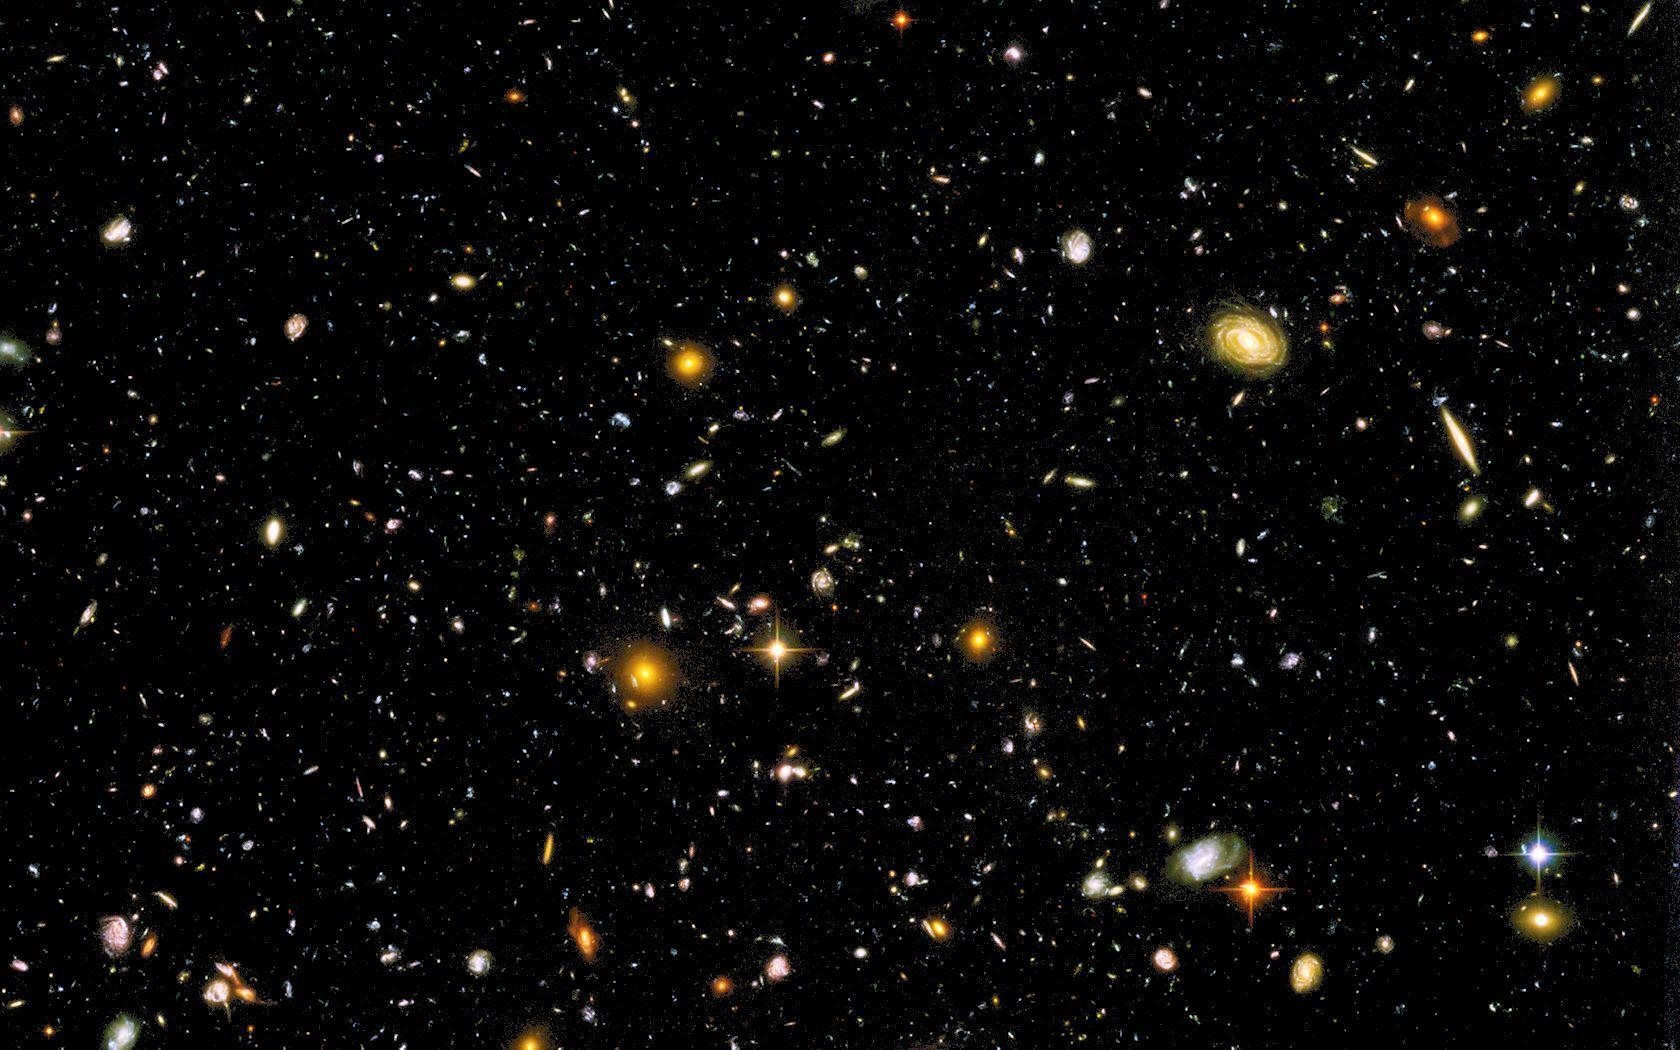 hubble deep field hd wallpaper - photo #5